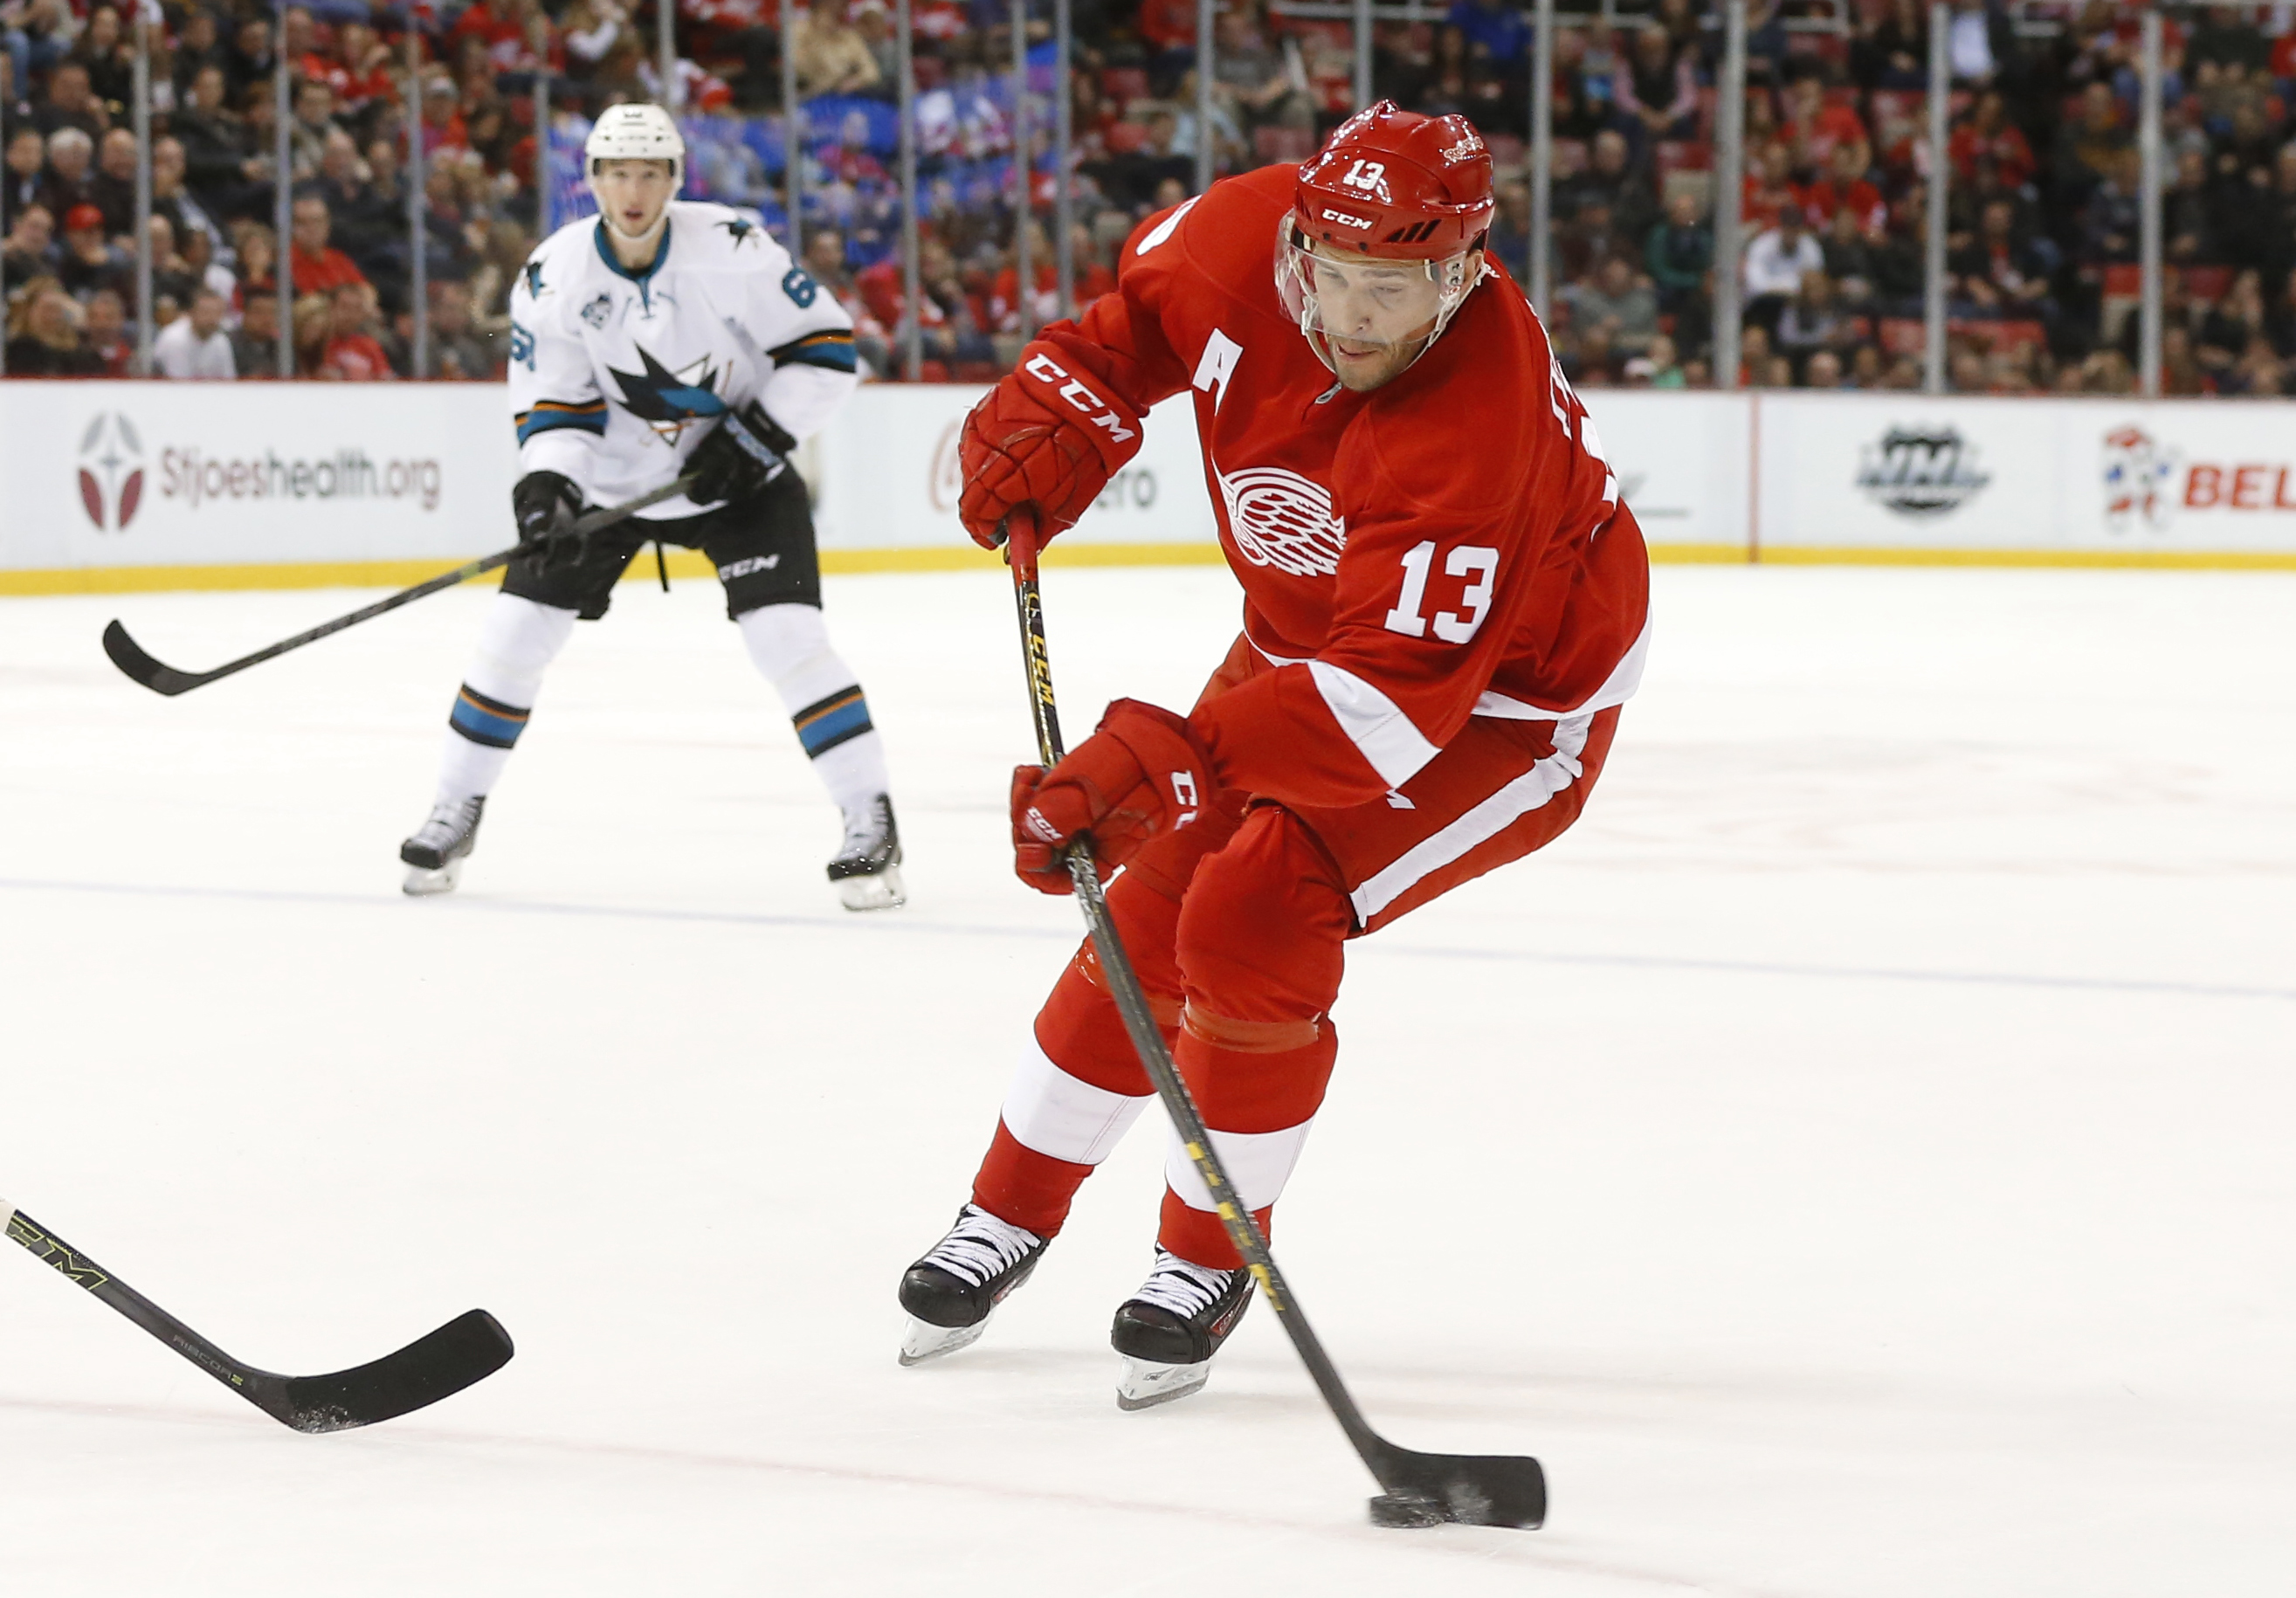 Detroit Red Wings' Pavel Datsyuk shoots against the San Jose Sharks in the second period of an NHL hockey game Friday, Nov. 13, 2015 in Detroit. (AP Photo/Paul Sancya)